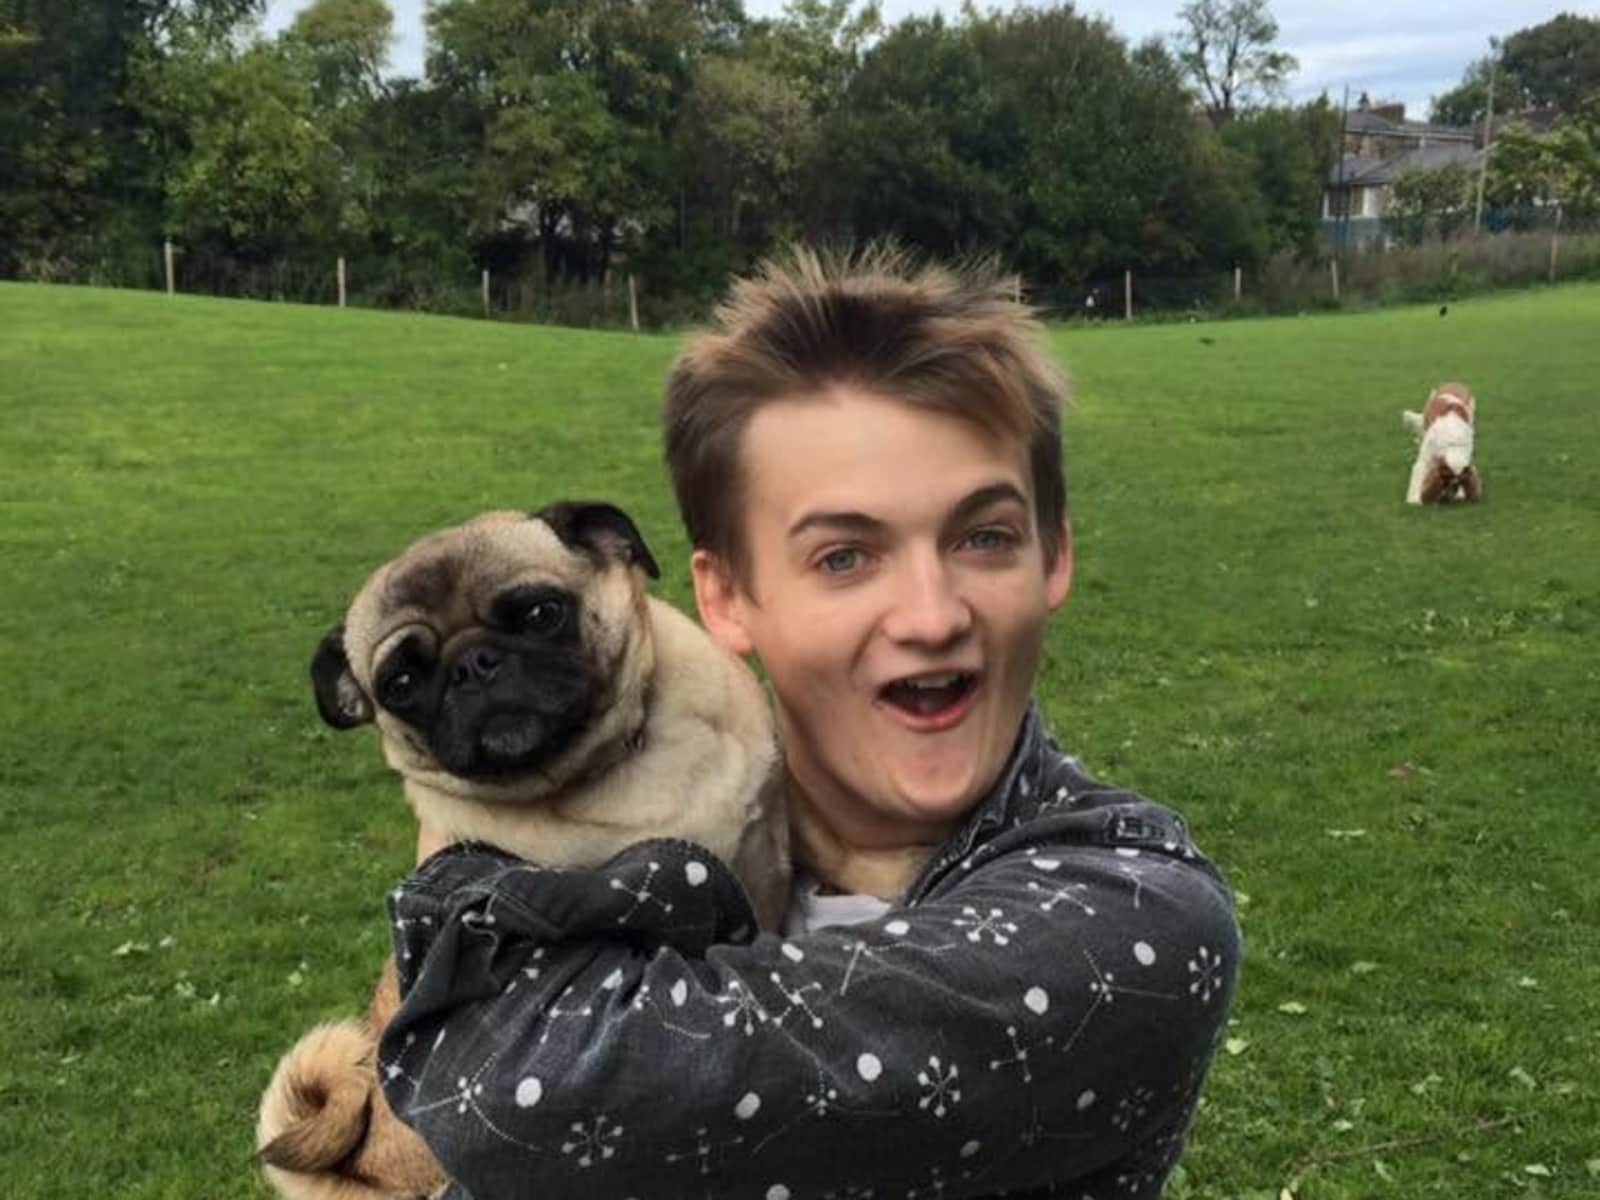 Jack gleeson from London, United Kingdom